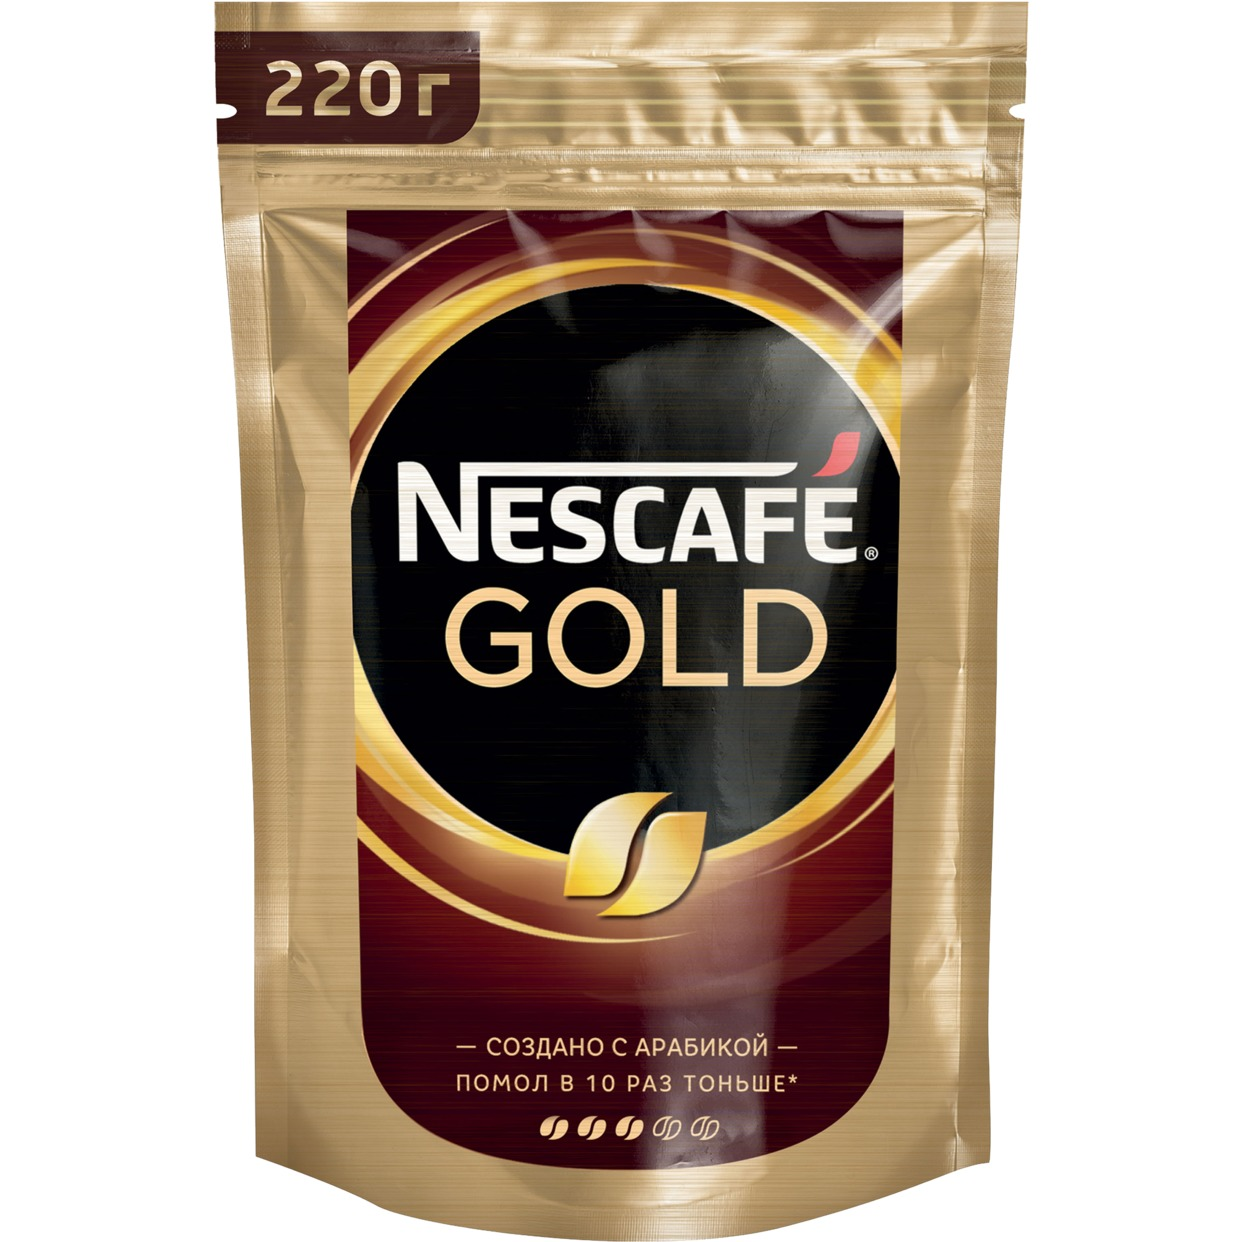 NESCAFE GOLD . НАТУРАЛЬНЫЙ РАСТВОРИМЫЙ СУБЛИМИРОВАННЫЙ КОФЕ С ДОБАВЛЕНИЕМ НАТУРАЛЬНОГО ЖАРЕНОГО МОЛОТОГО КОФЕ, 220 г